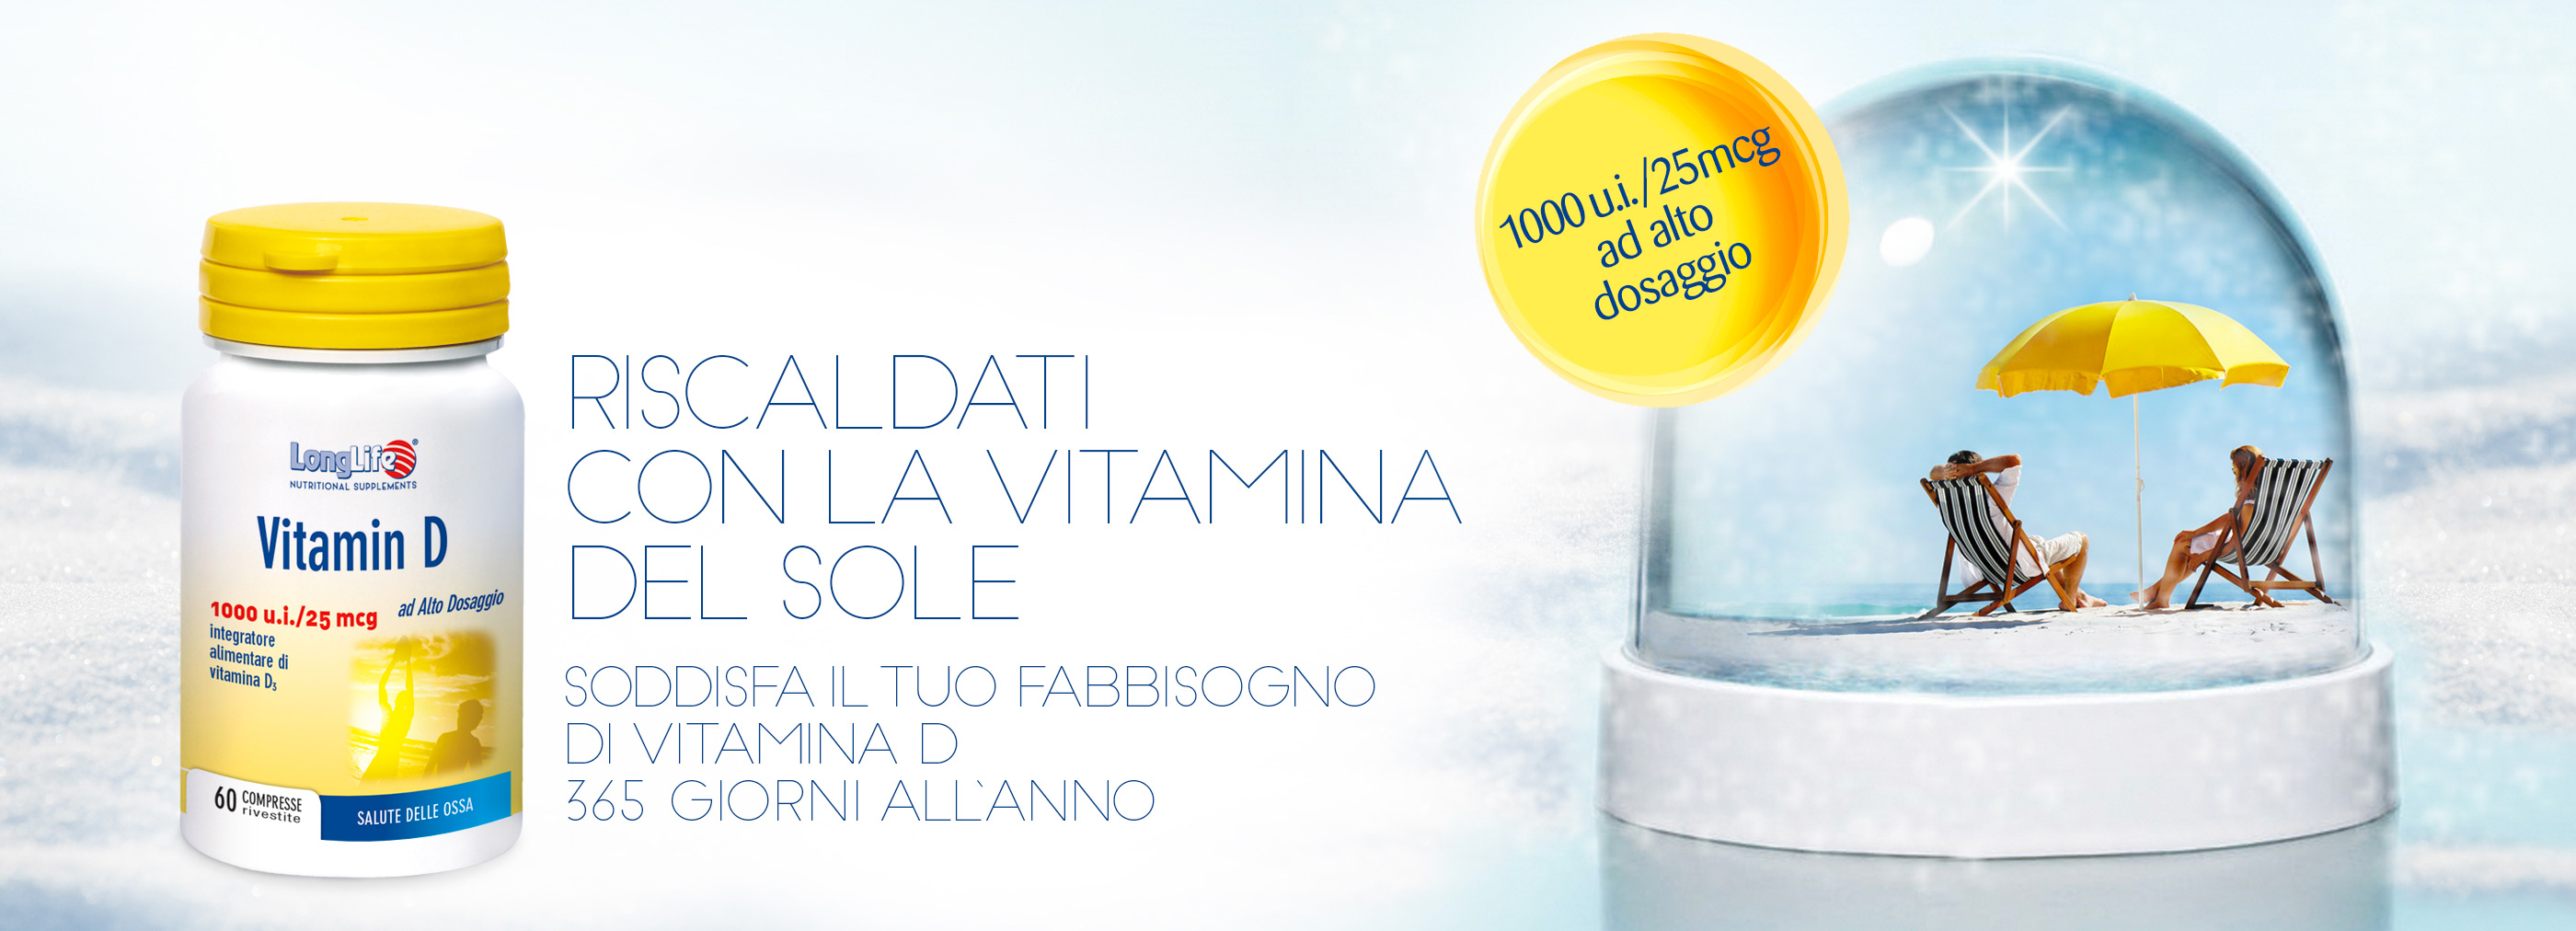 Integratore Vitamin D